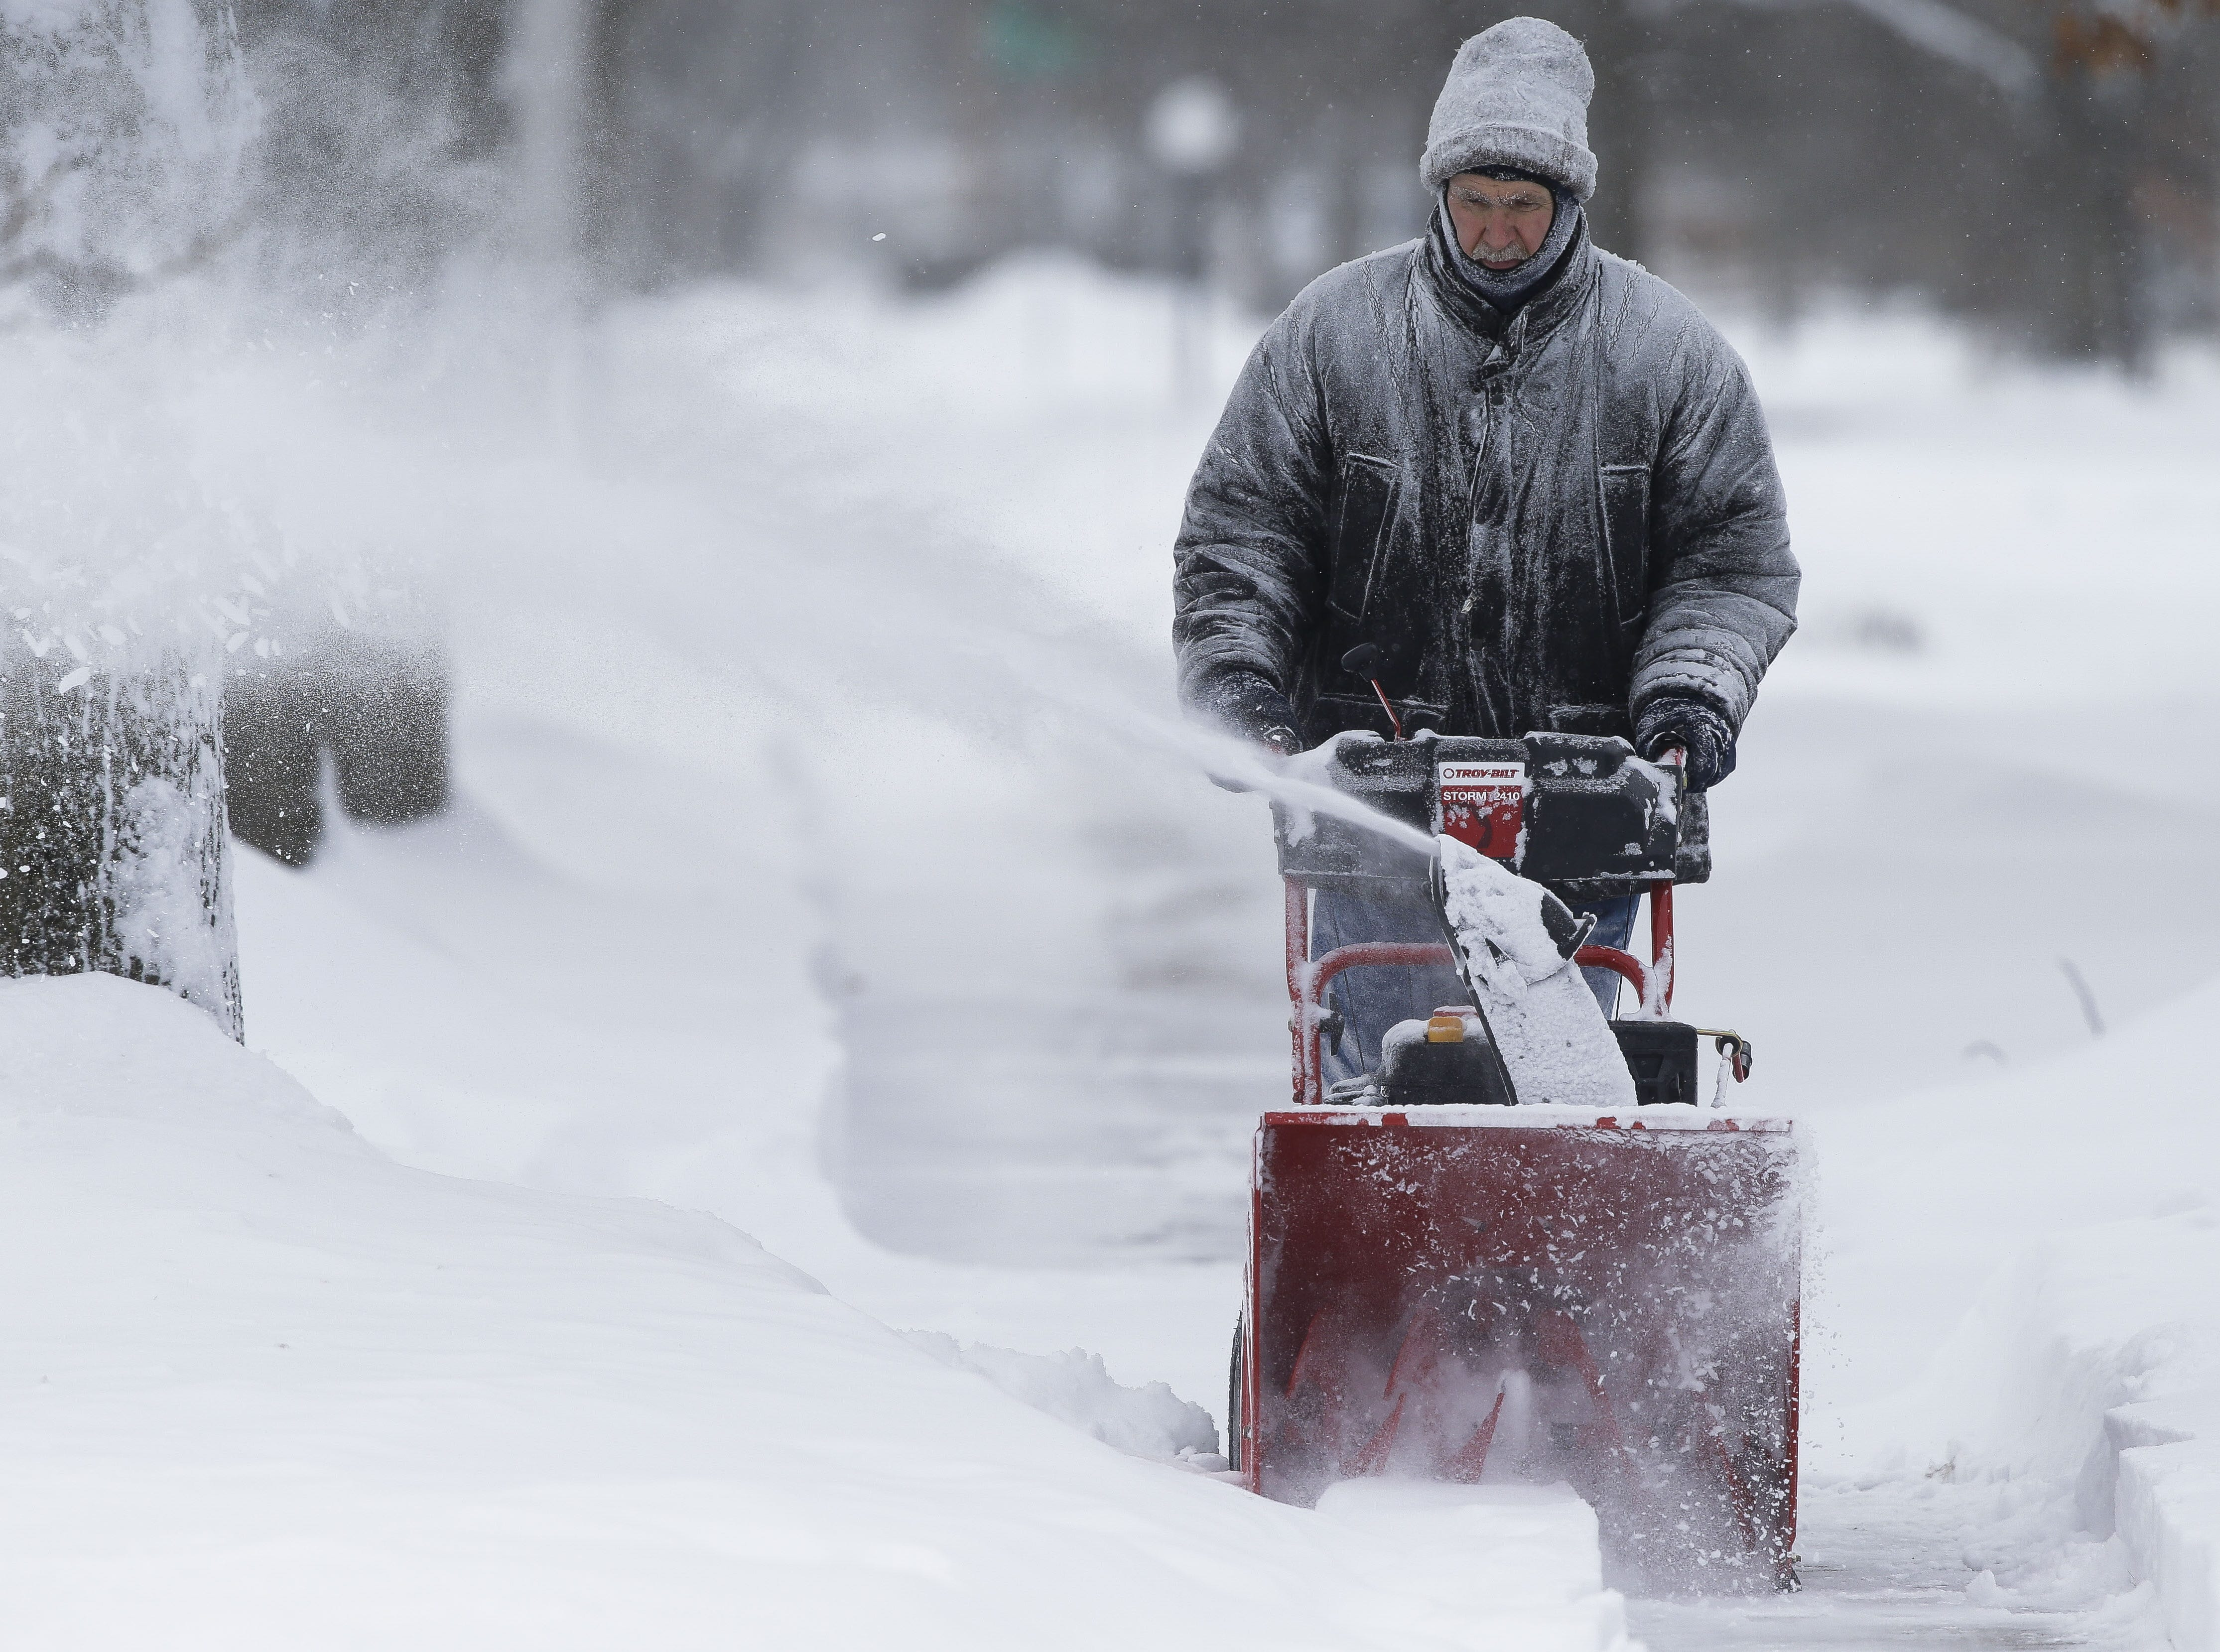 Roy Cychosz clears the sidewalk in front of his home on Monday, Jan. 28, 2019, in Stevens Point, Wis. A winter storm rolled through Wisconsin on Sunday and Monday, marking the first major snowfall of the season.